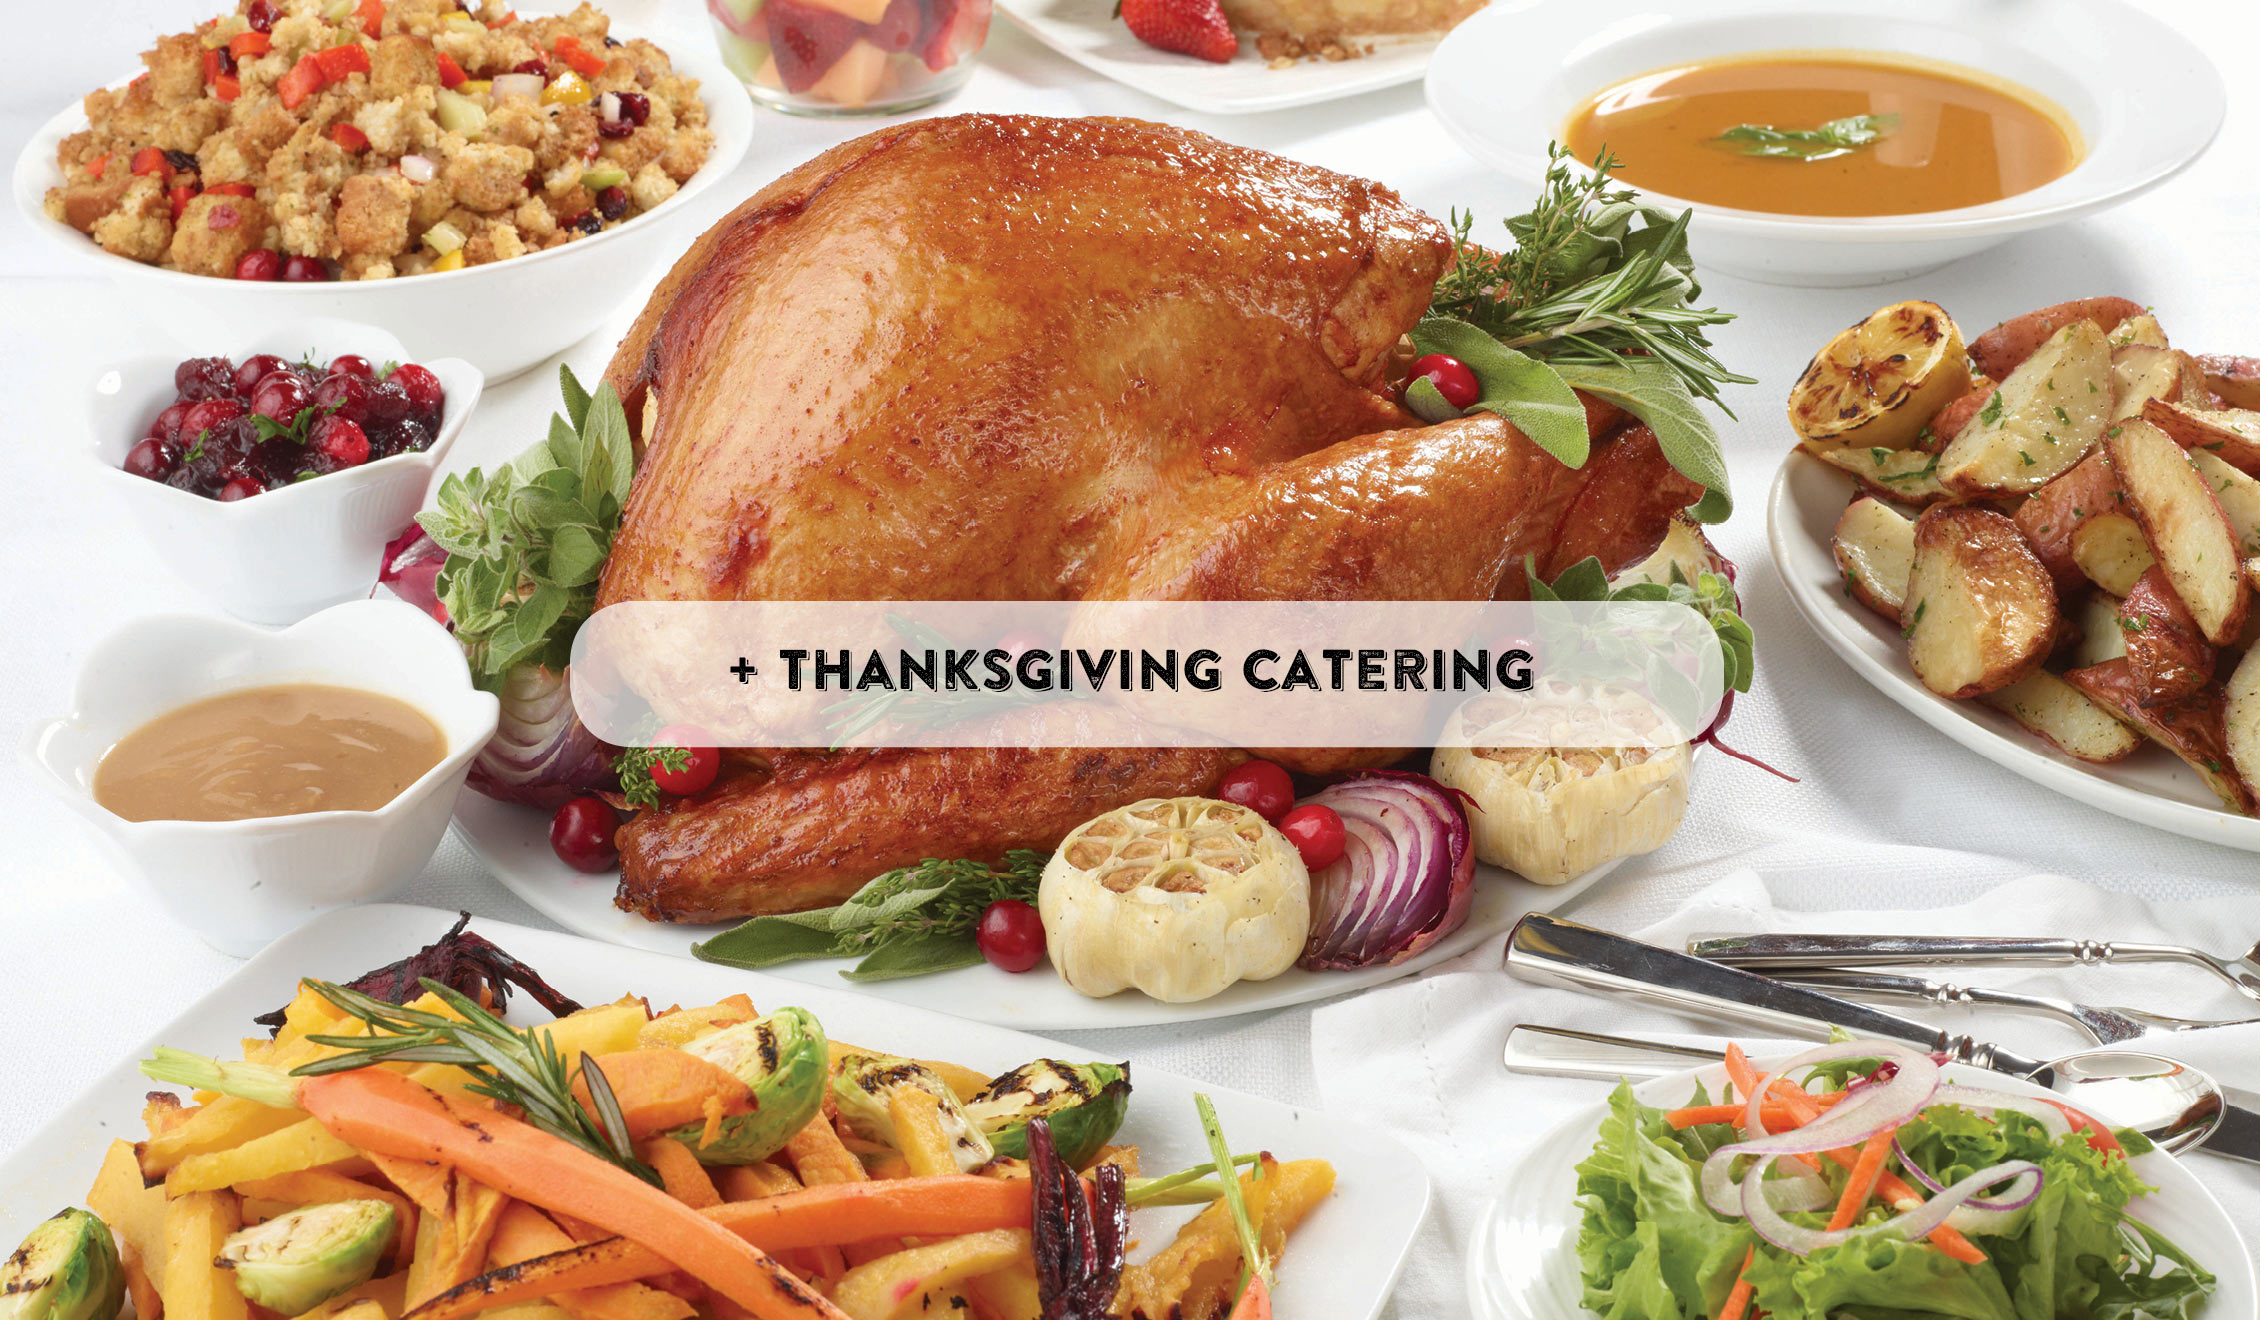 Pickle Barrel Catering Catering Toronto And Gta Since 1971